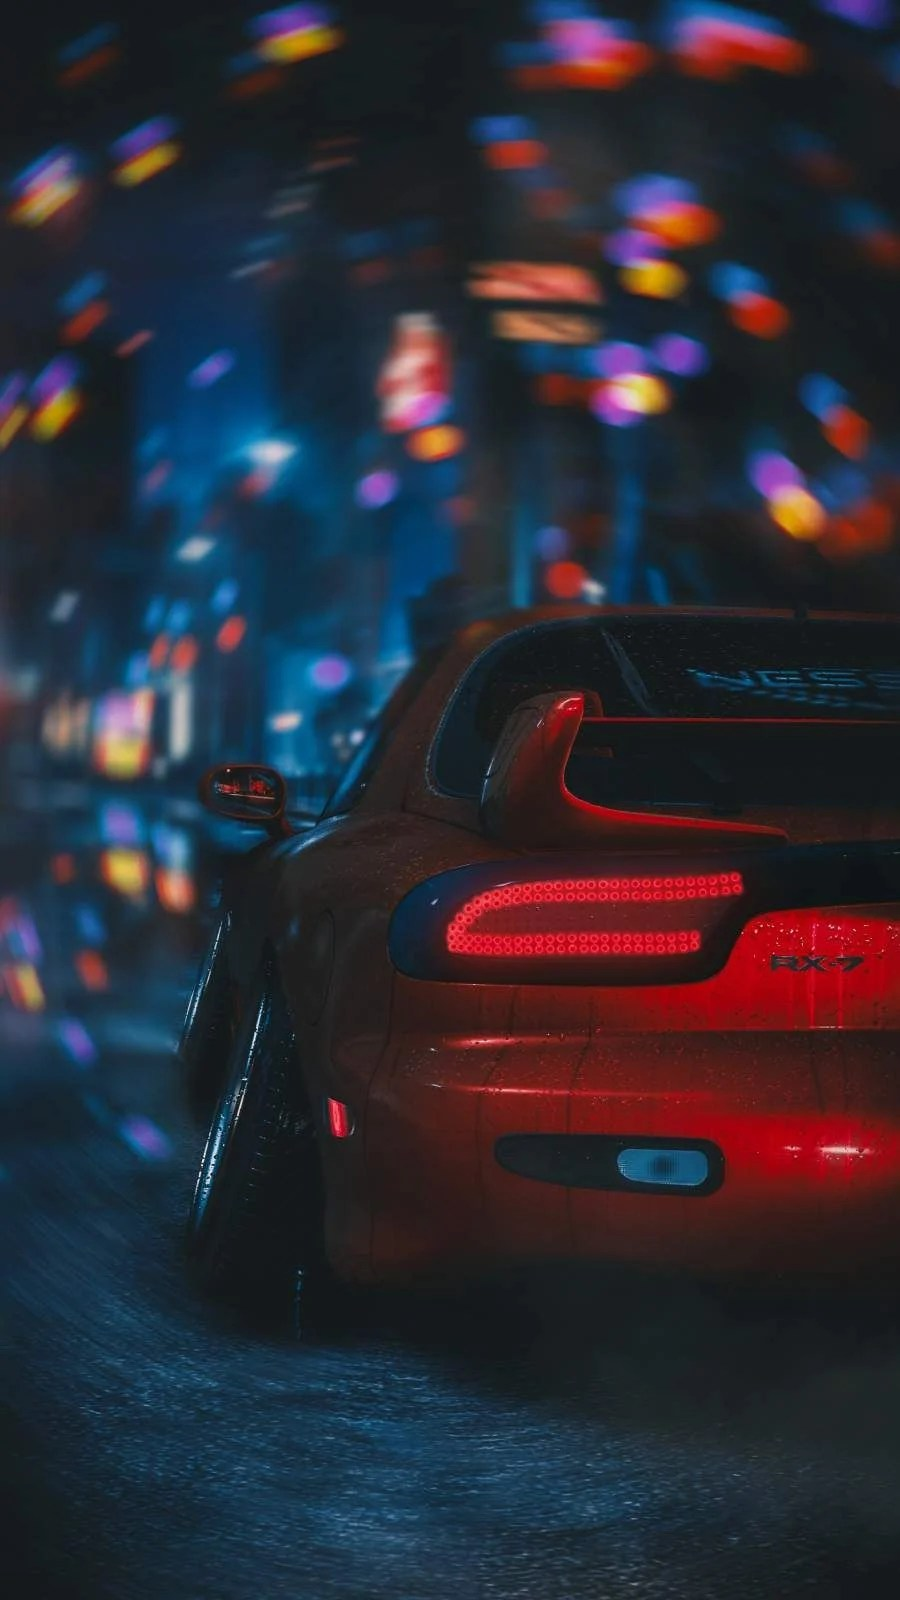 Save $52 for a limited time! Jdm Iphone Wallpapers Wallpaper Cave